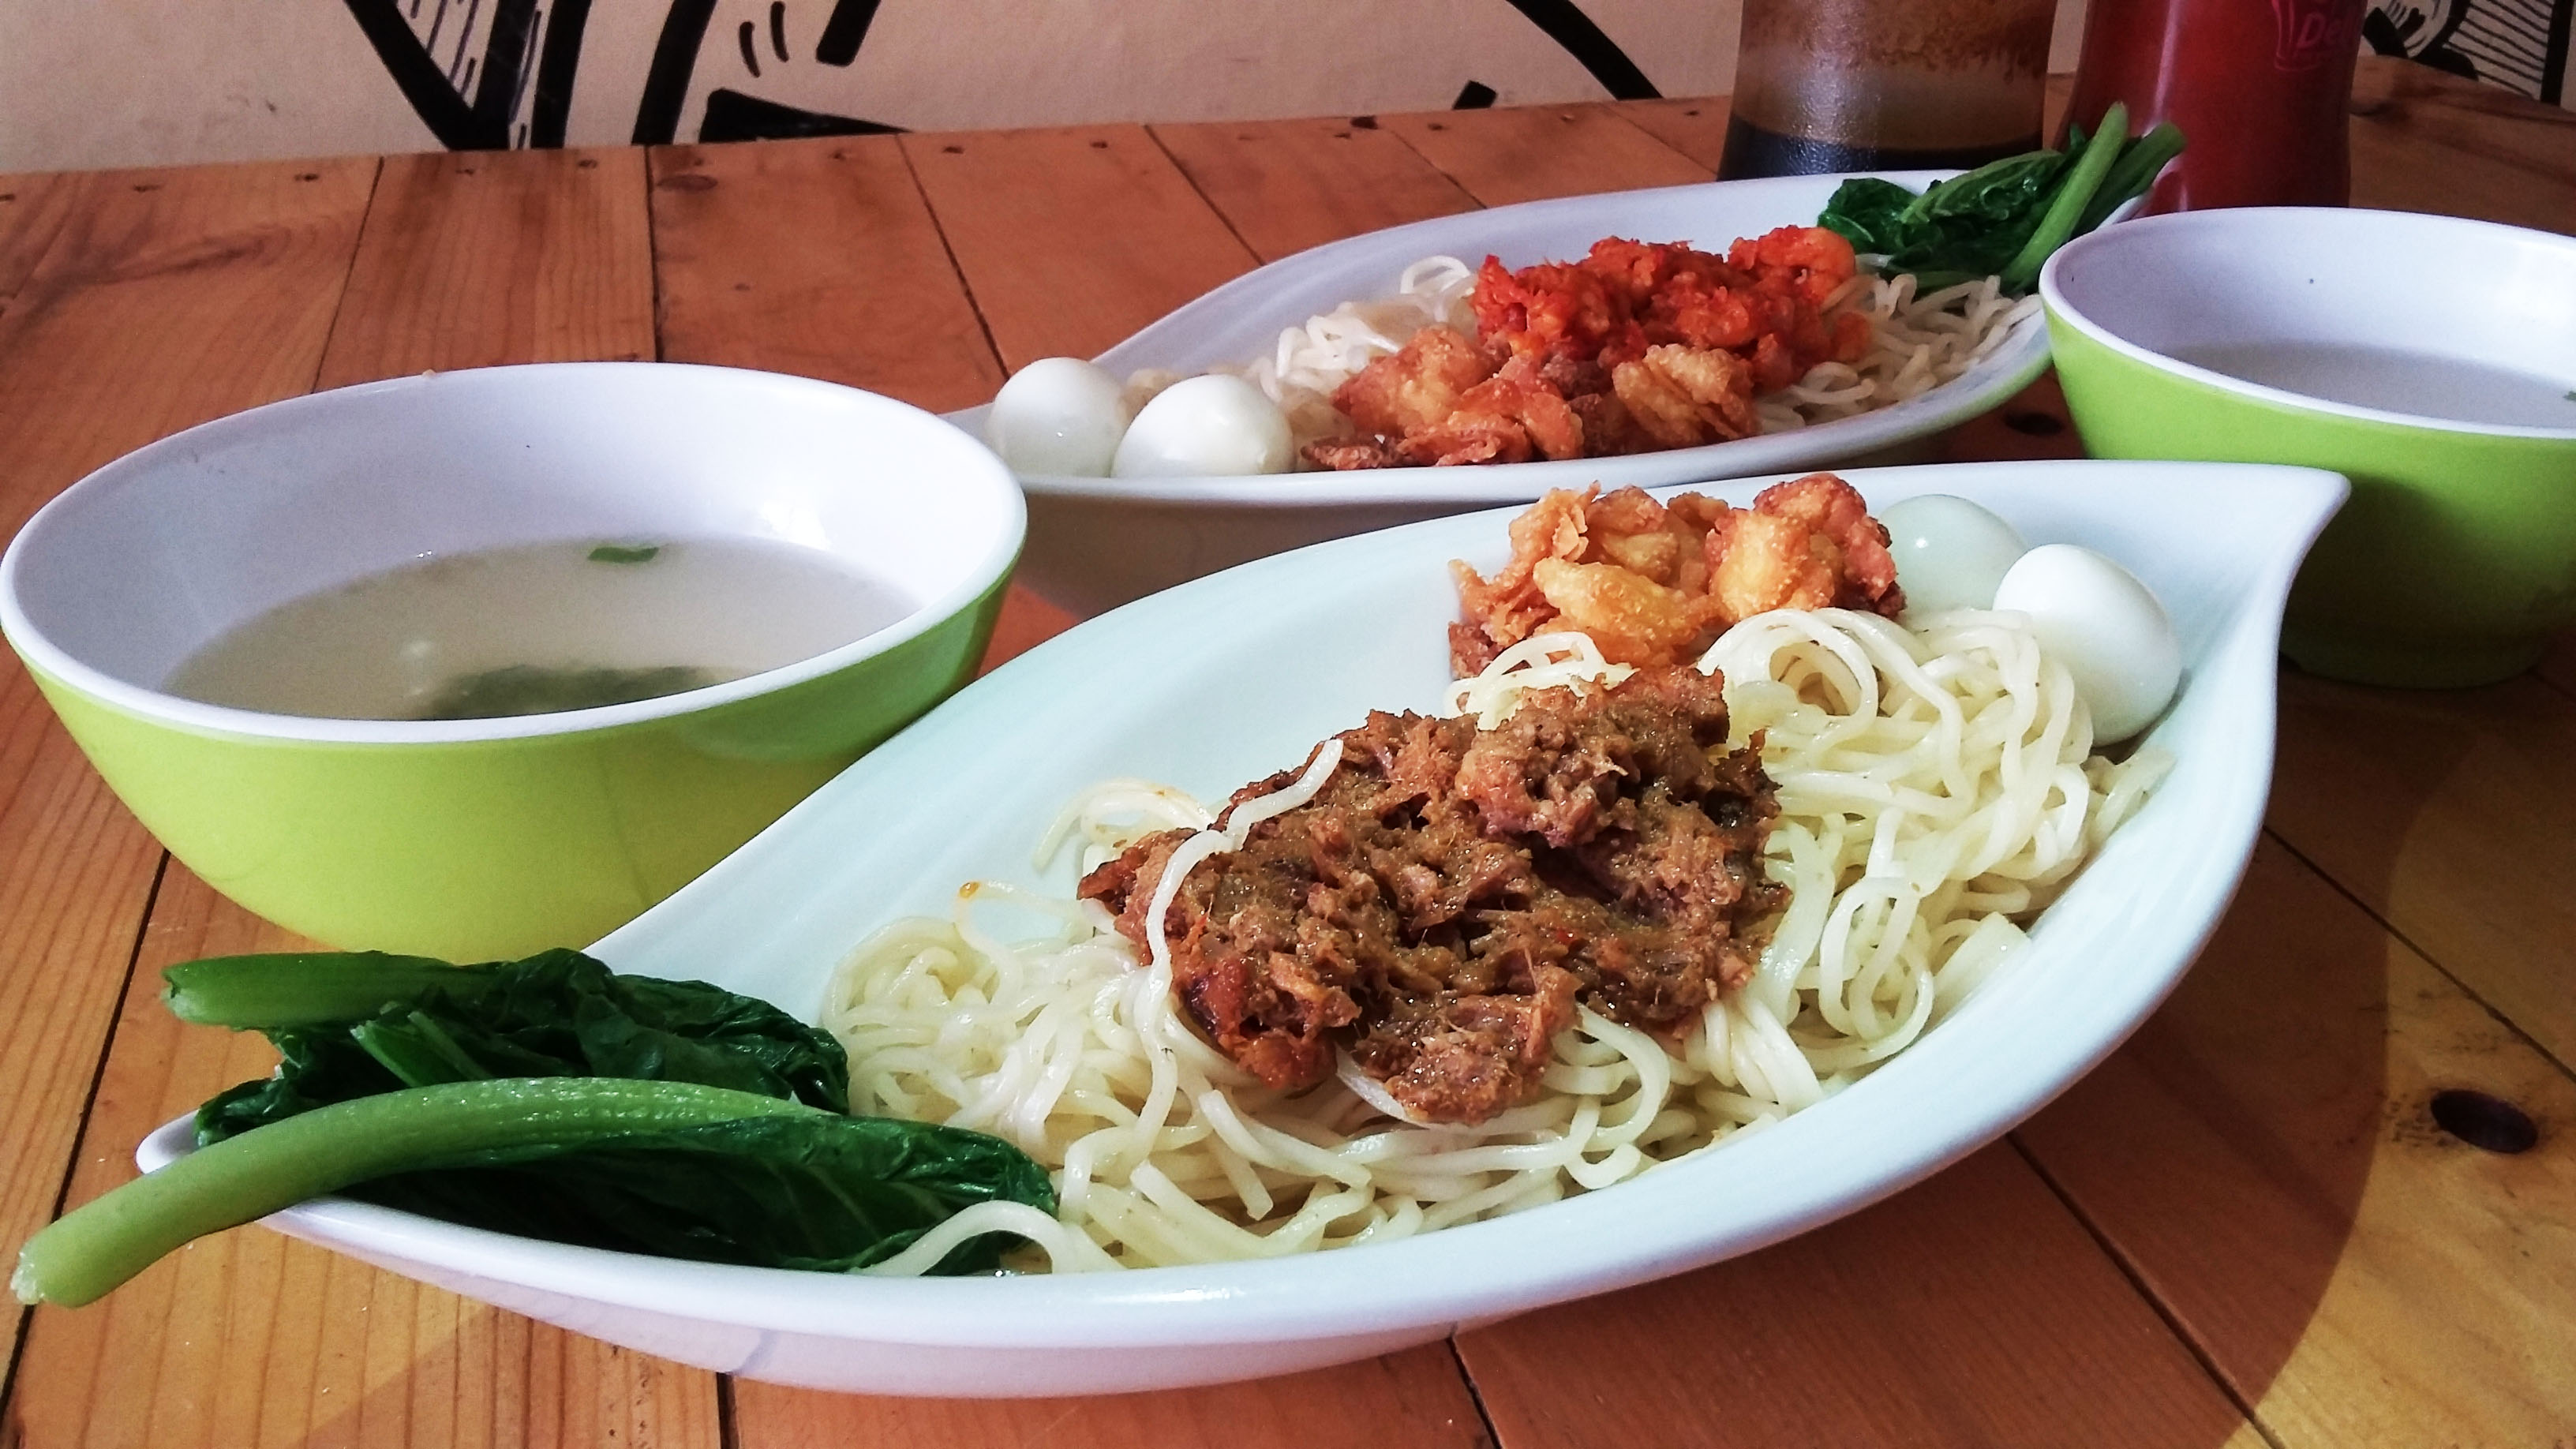 Makan Mie Rendang Bareng Sweet Love di She Cafe